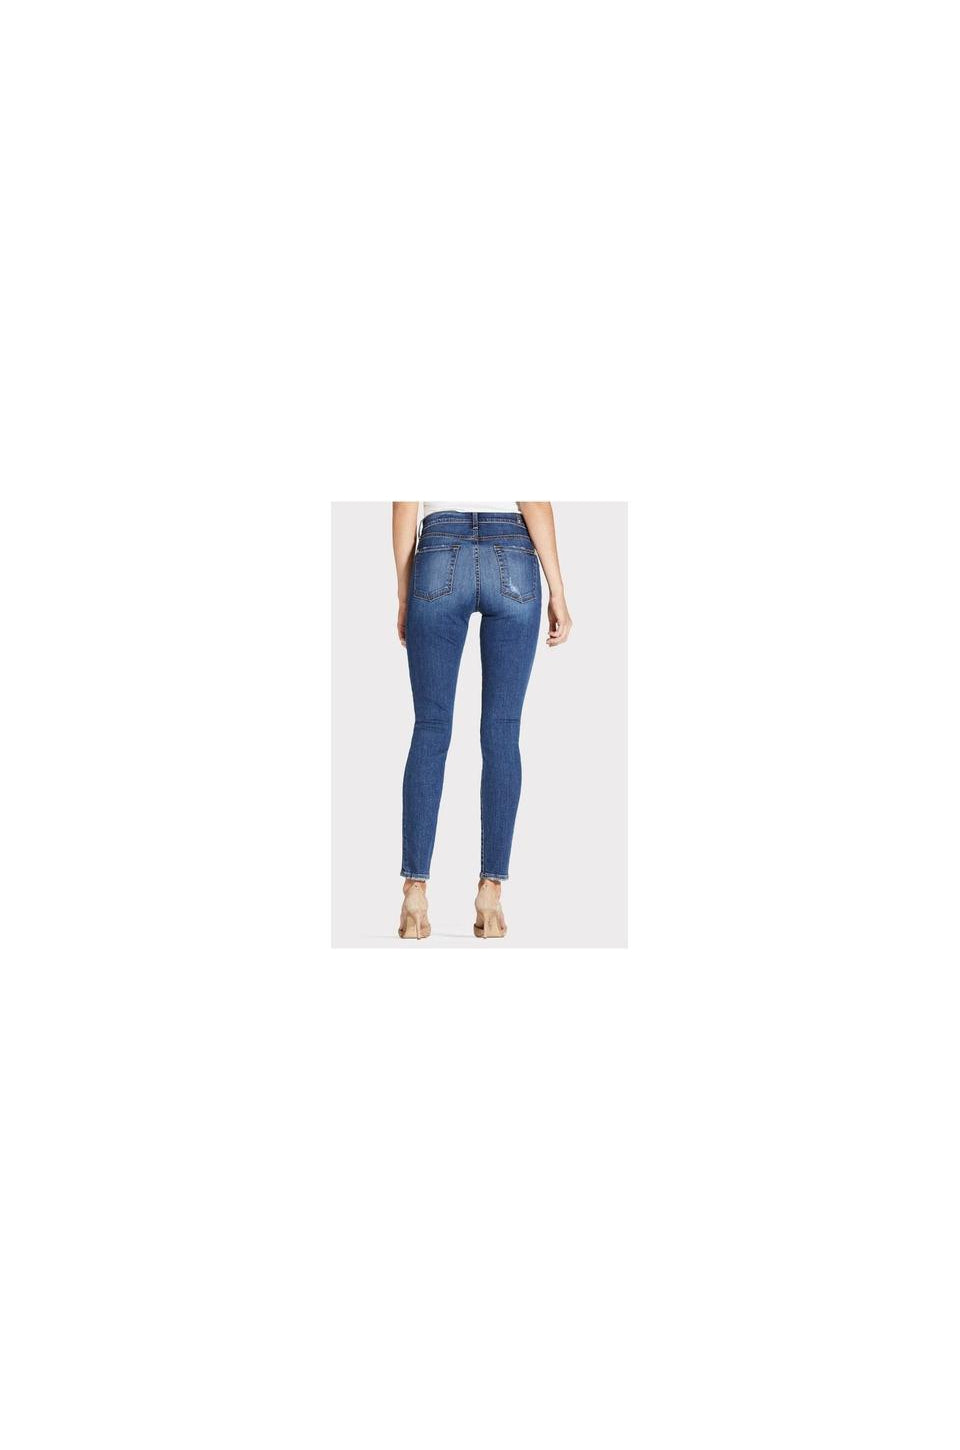 7ForAllMankind Ankle Skinny In Blue Monday